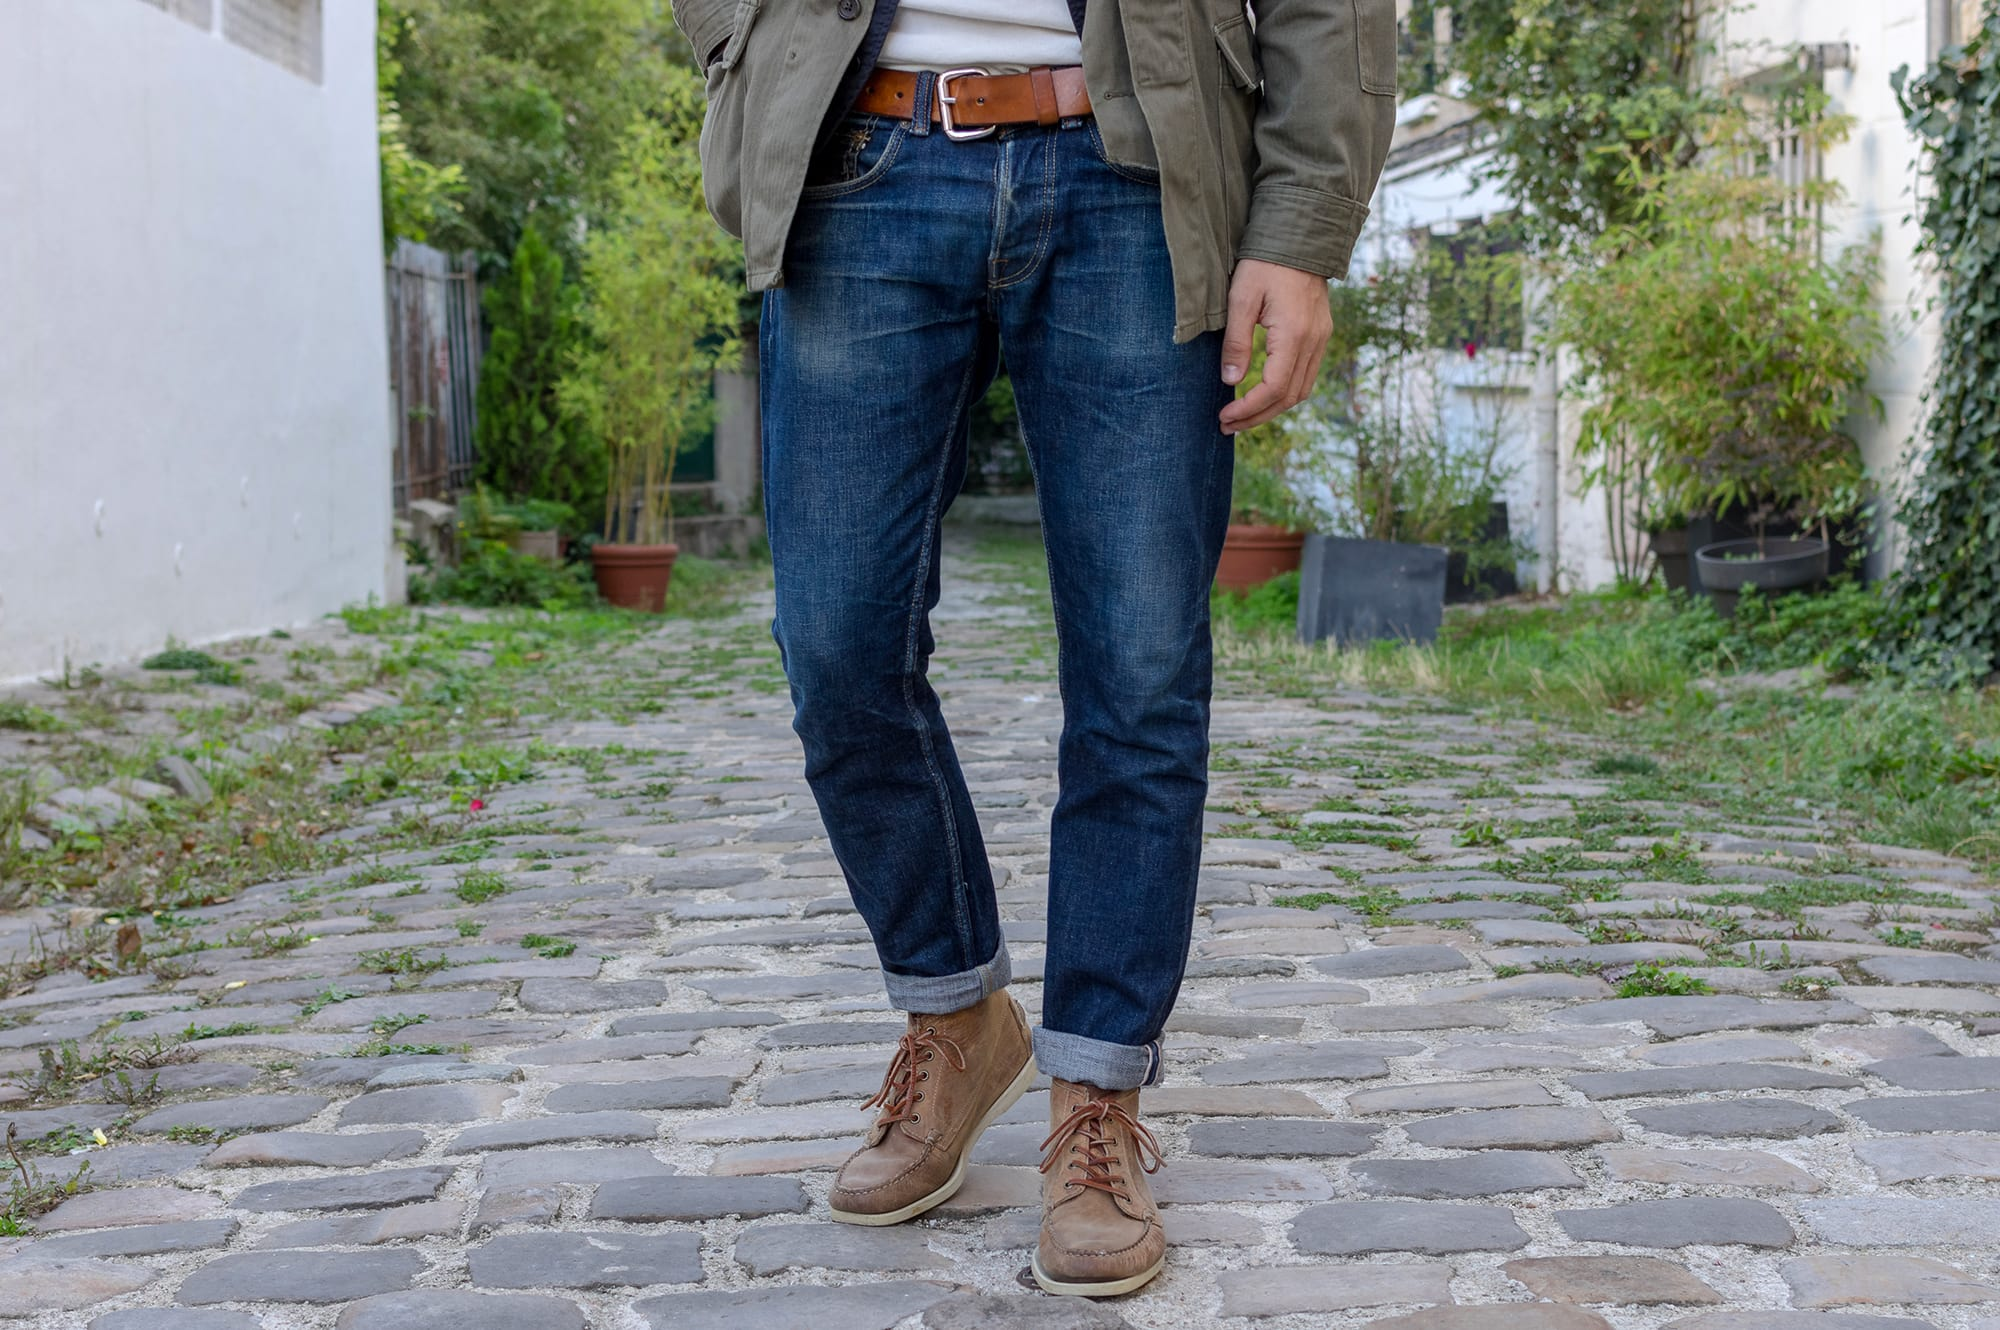 Engineered Garments BDU field jacket with a gilet inspired by C1 Ermergency Sustenance Vest and a jean from Phi denim with classic dockside boots sebago beacon